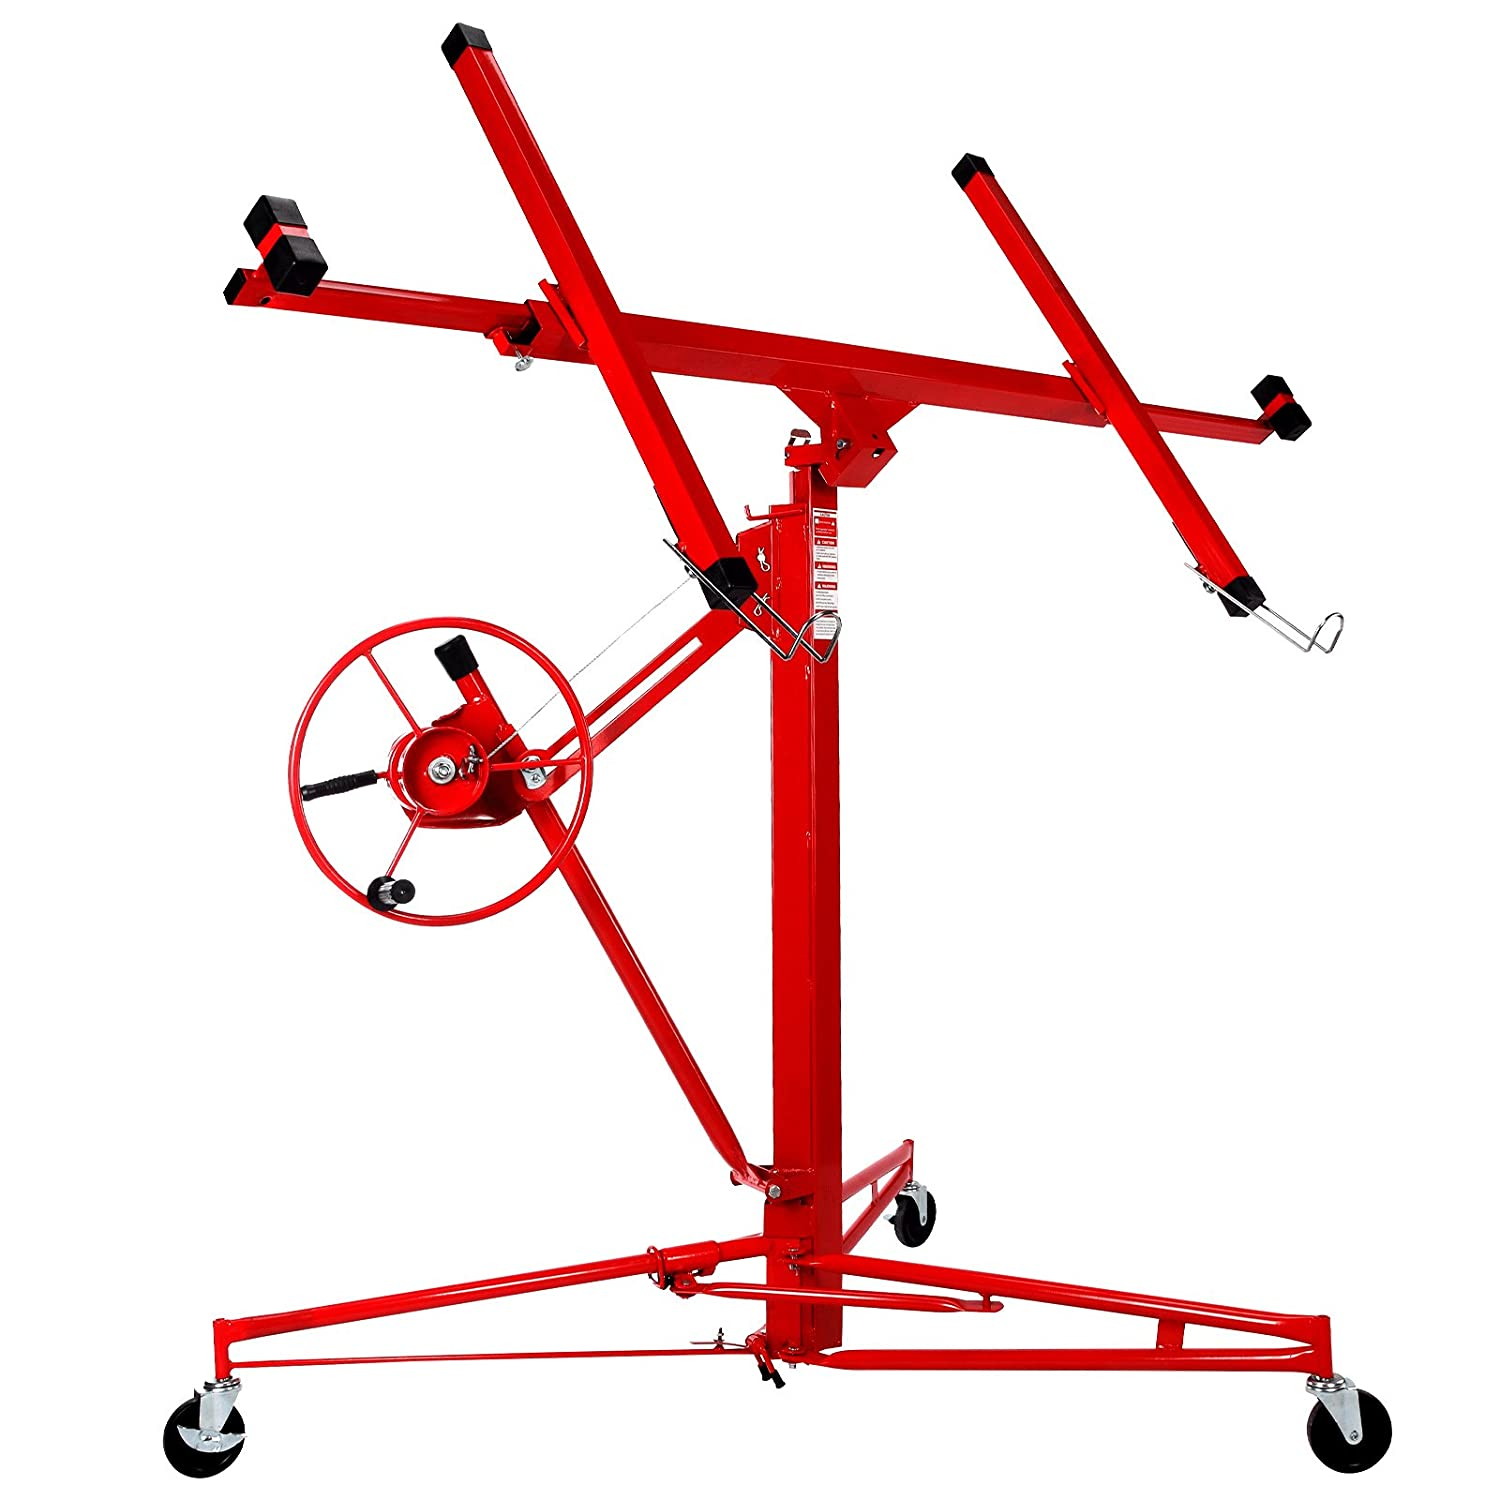 Superworth 11FT Heavy Duty Drywall Lift Lifter Plaster Board Panel Hoist Jack Tool 70kg Lifting Capacity With 4' Caster Wheels Rolling Lockable Red SWBUK